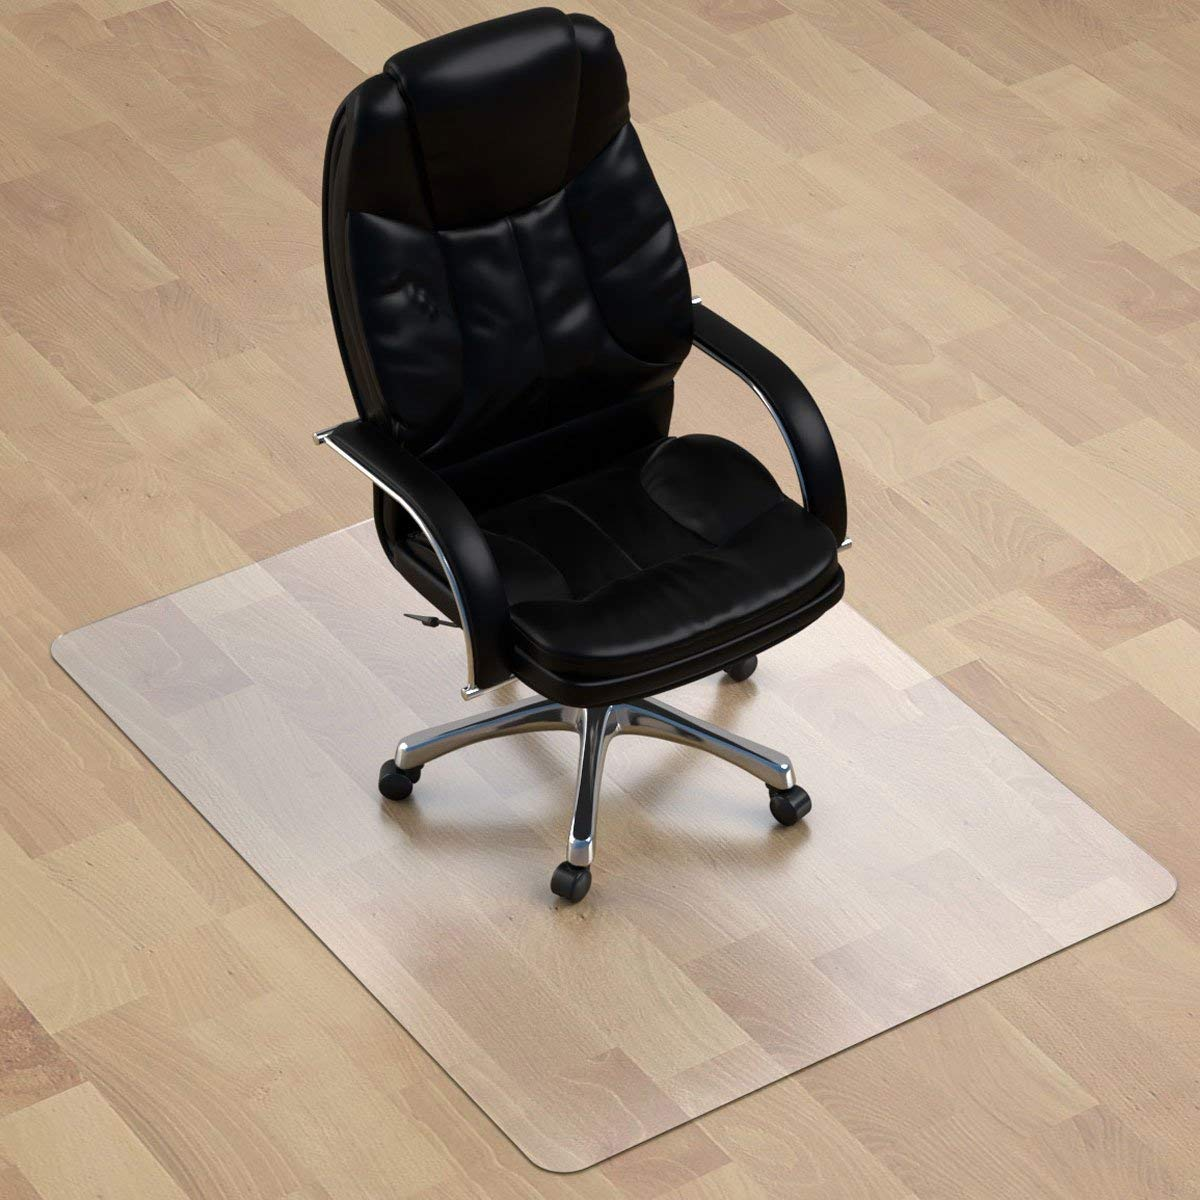 Polycarbonate Office Chair Mat For Hardwood Floor, Floor Mat For Office  Chair(rolling Chairs) Desk ...